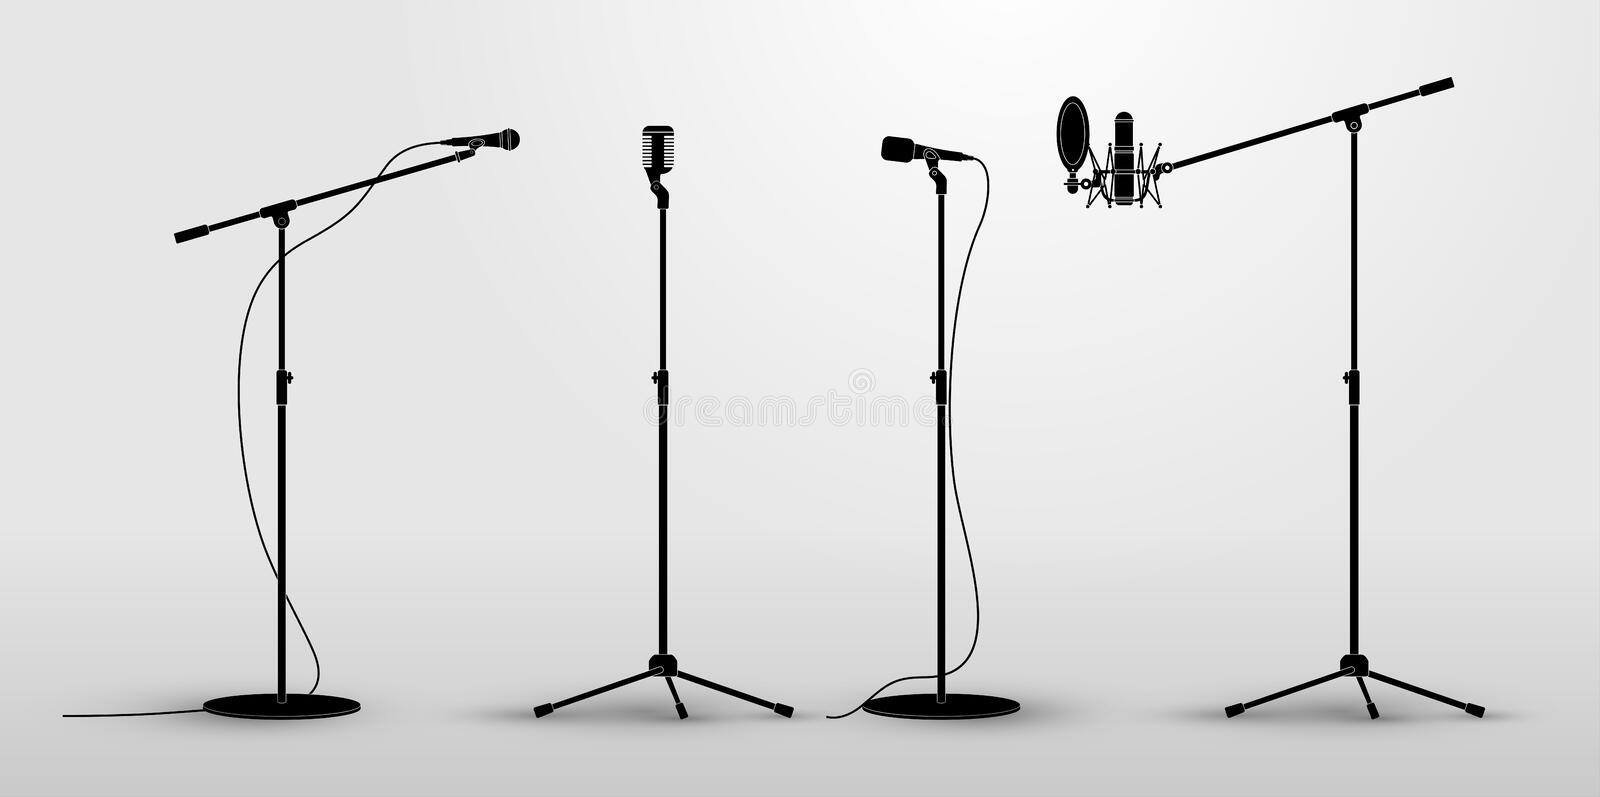 Set of microphones on counter. Flat design silhouette microphone, music icon, mic. Vector illustration. Isolated on white backgrou stock illustration